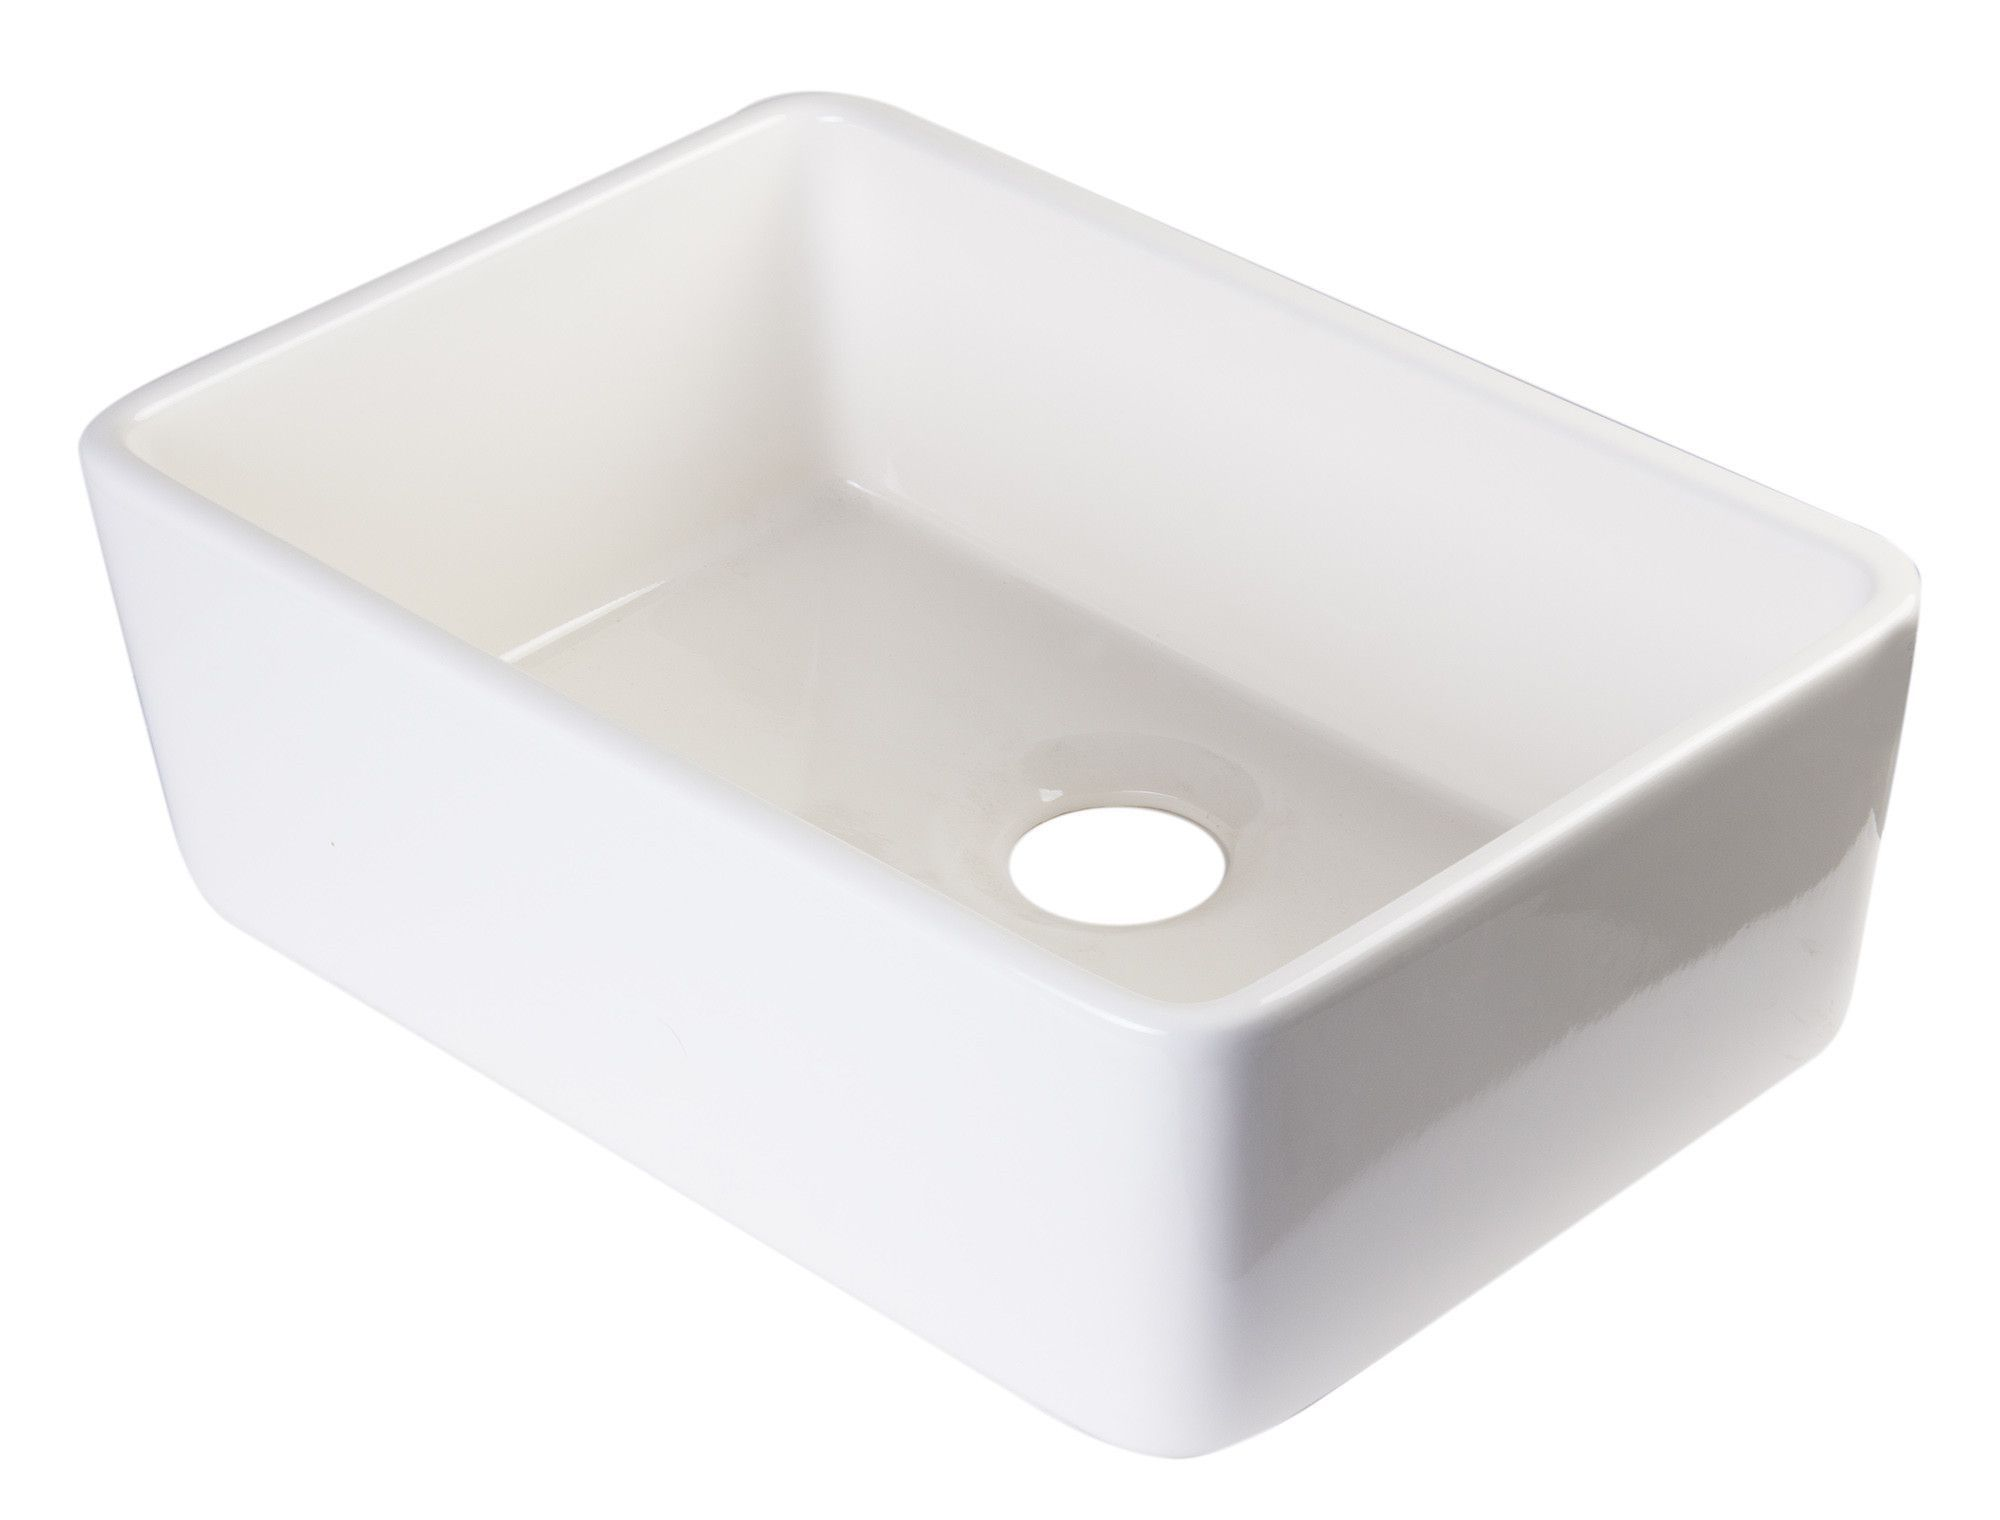 Farmhouse Apron Kitchen Sinks Alfi Brand Ab503 Fireclay 23 Single Bowl Farmhouse Apron Kitchen